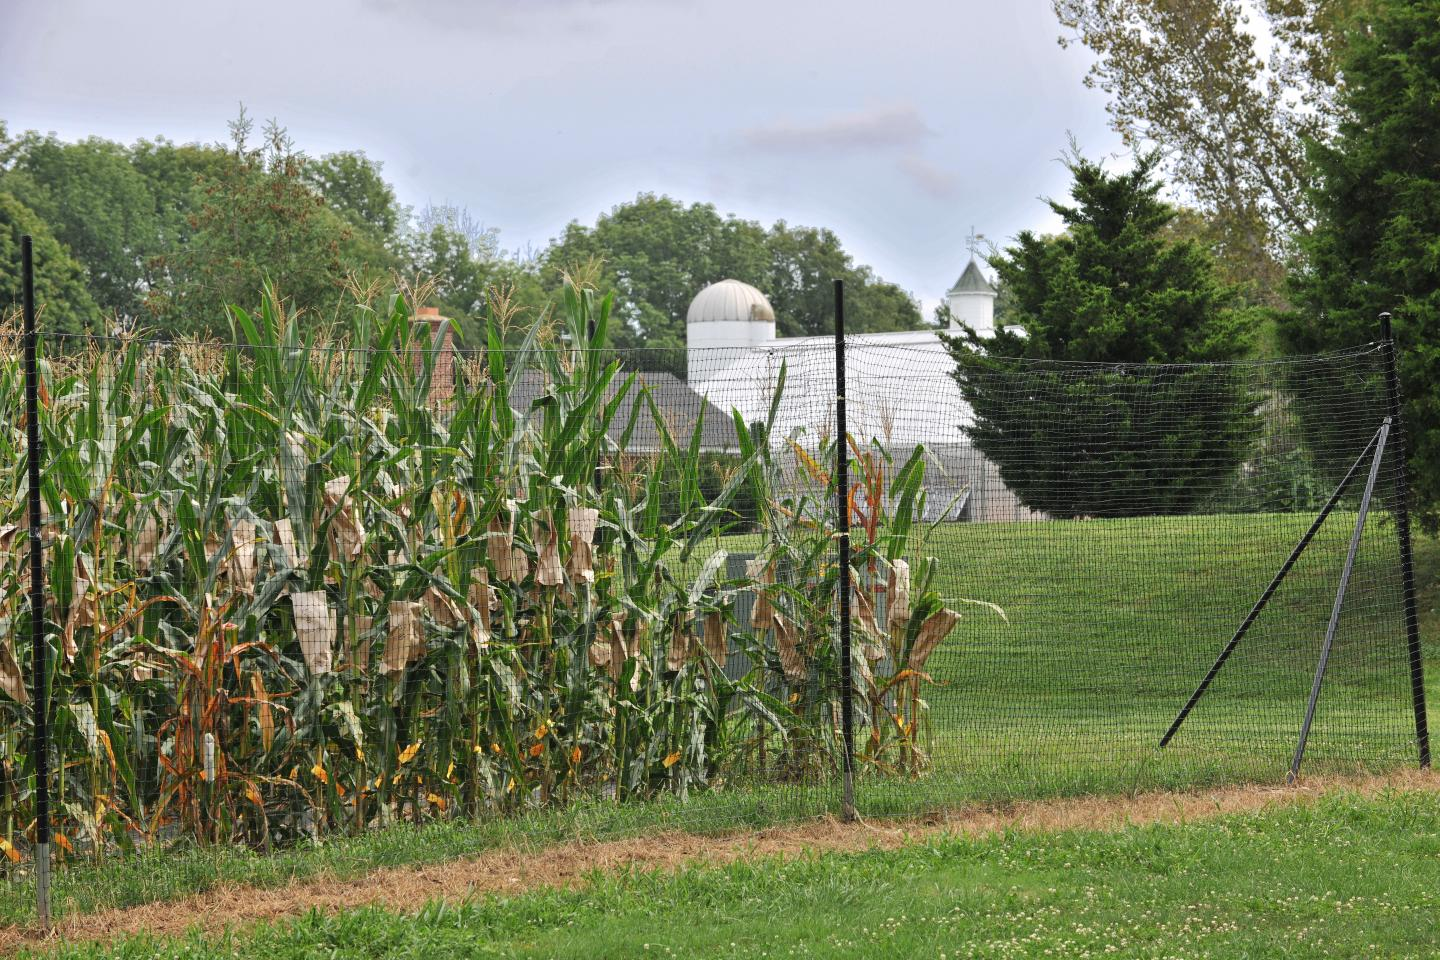 Corn Growing at the Experimental Station at Cold Spring Harbor